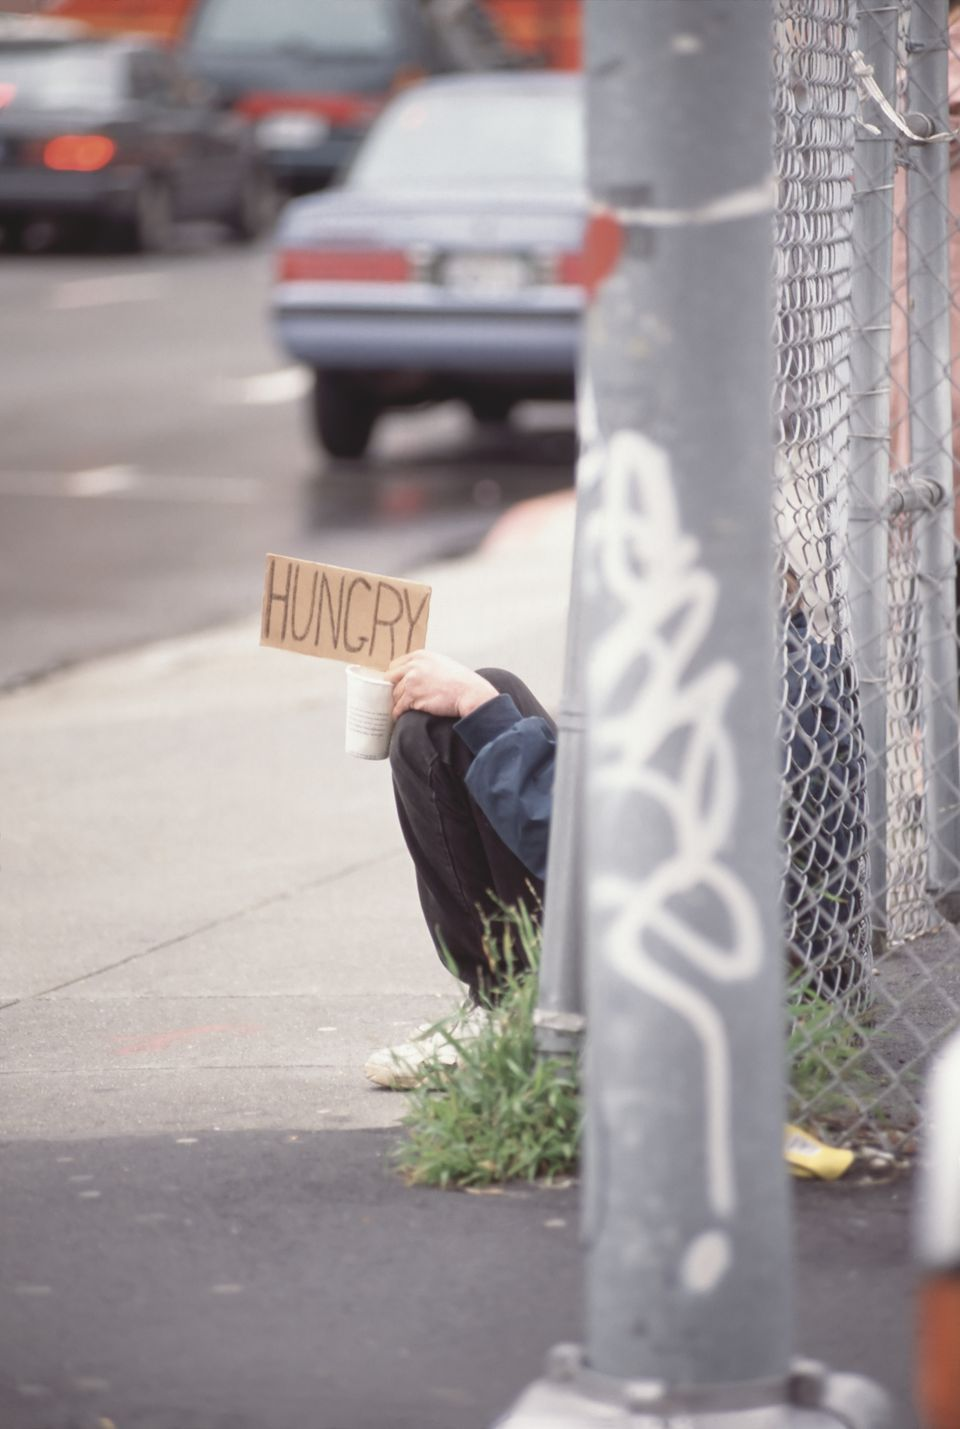 Homeless man holding a sign on the street